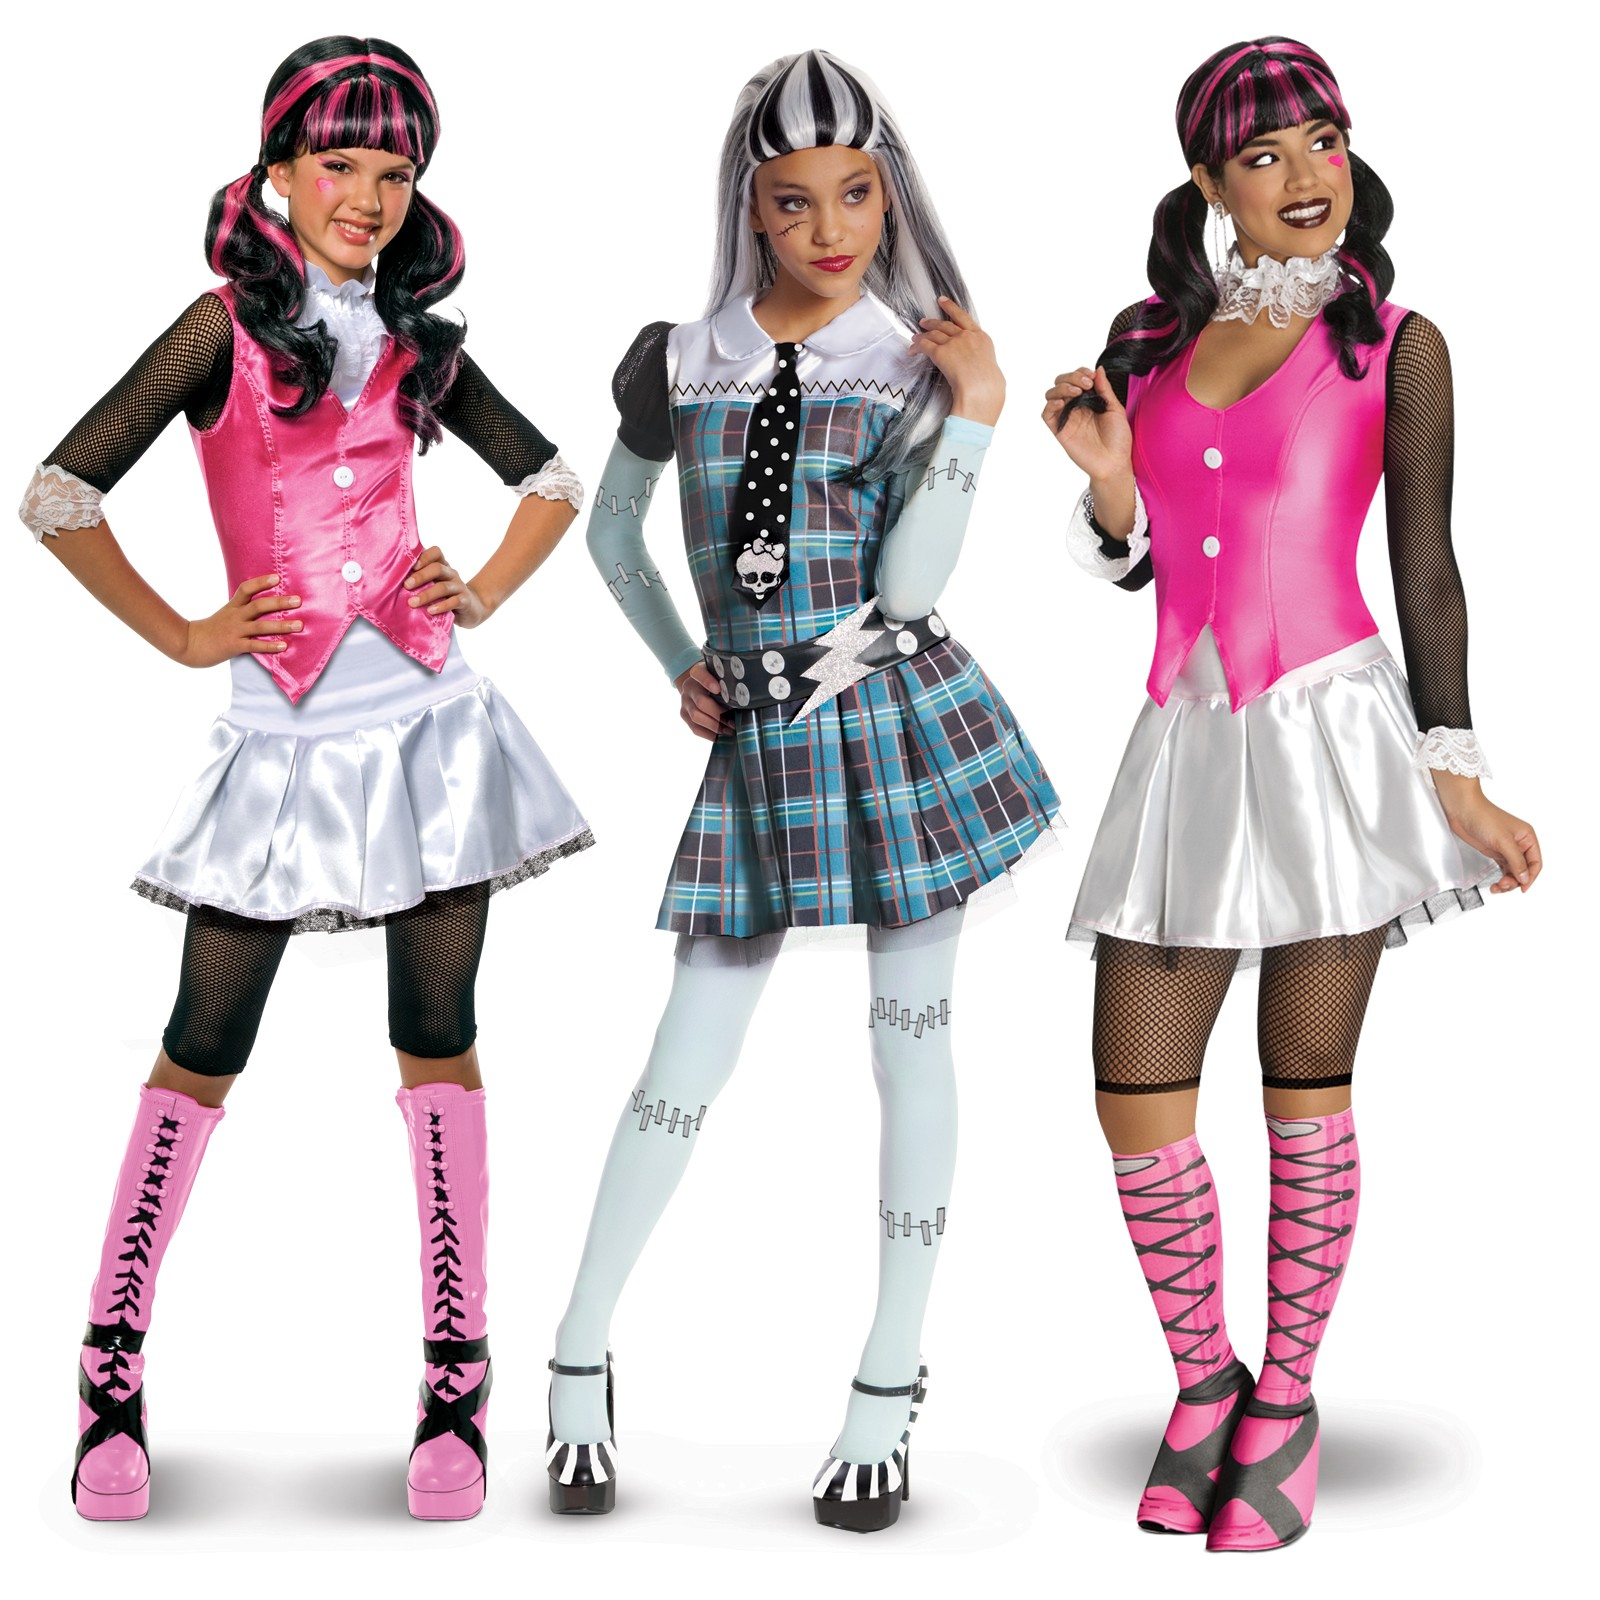 girls-that-halloween-costumes-for-teenage-girls-videos-china